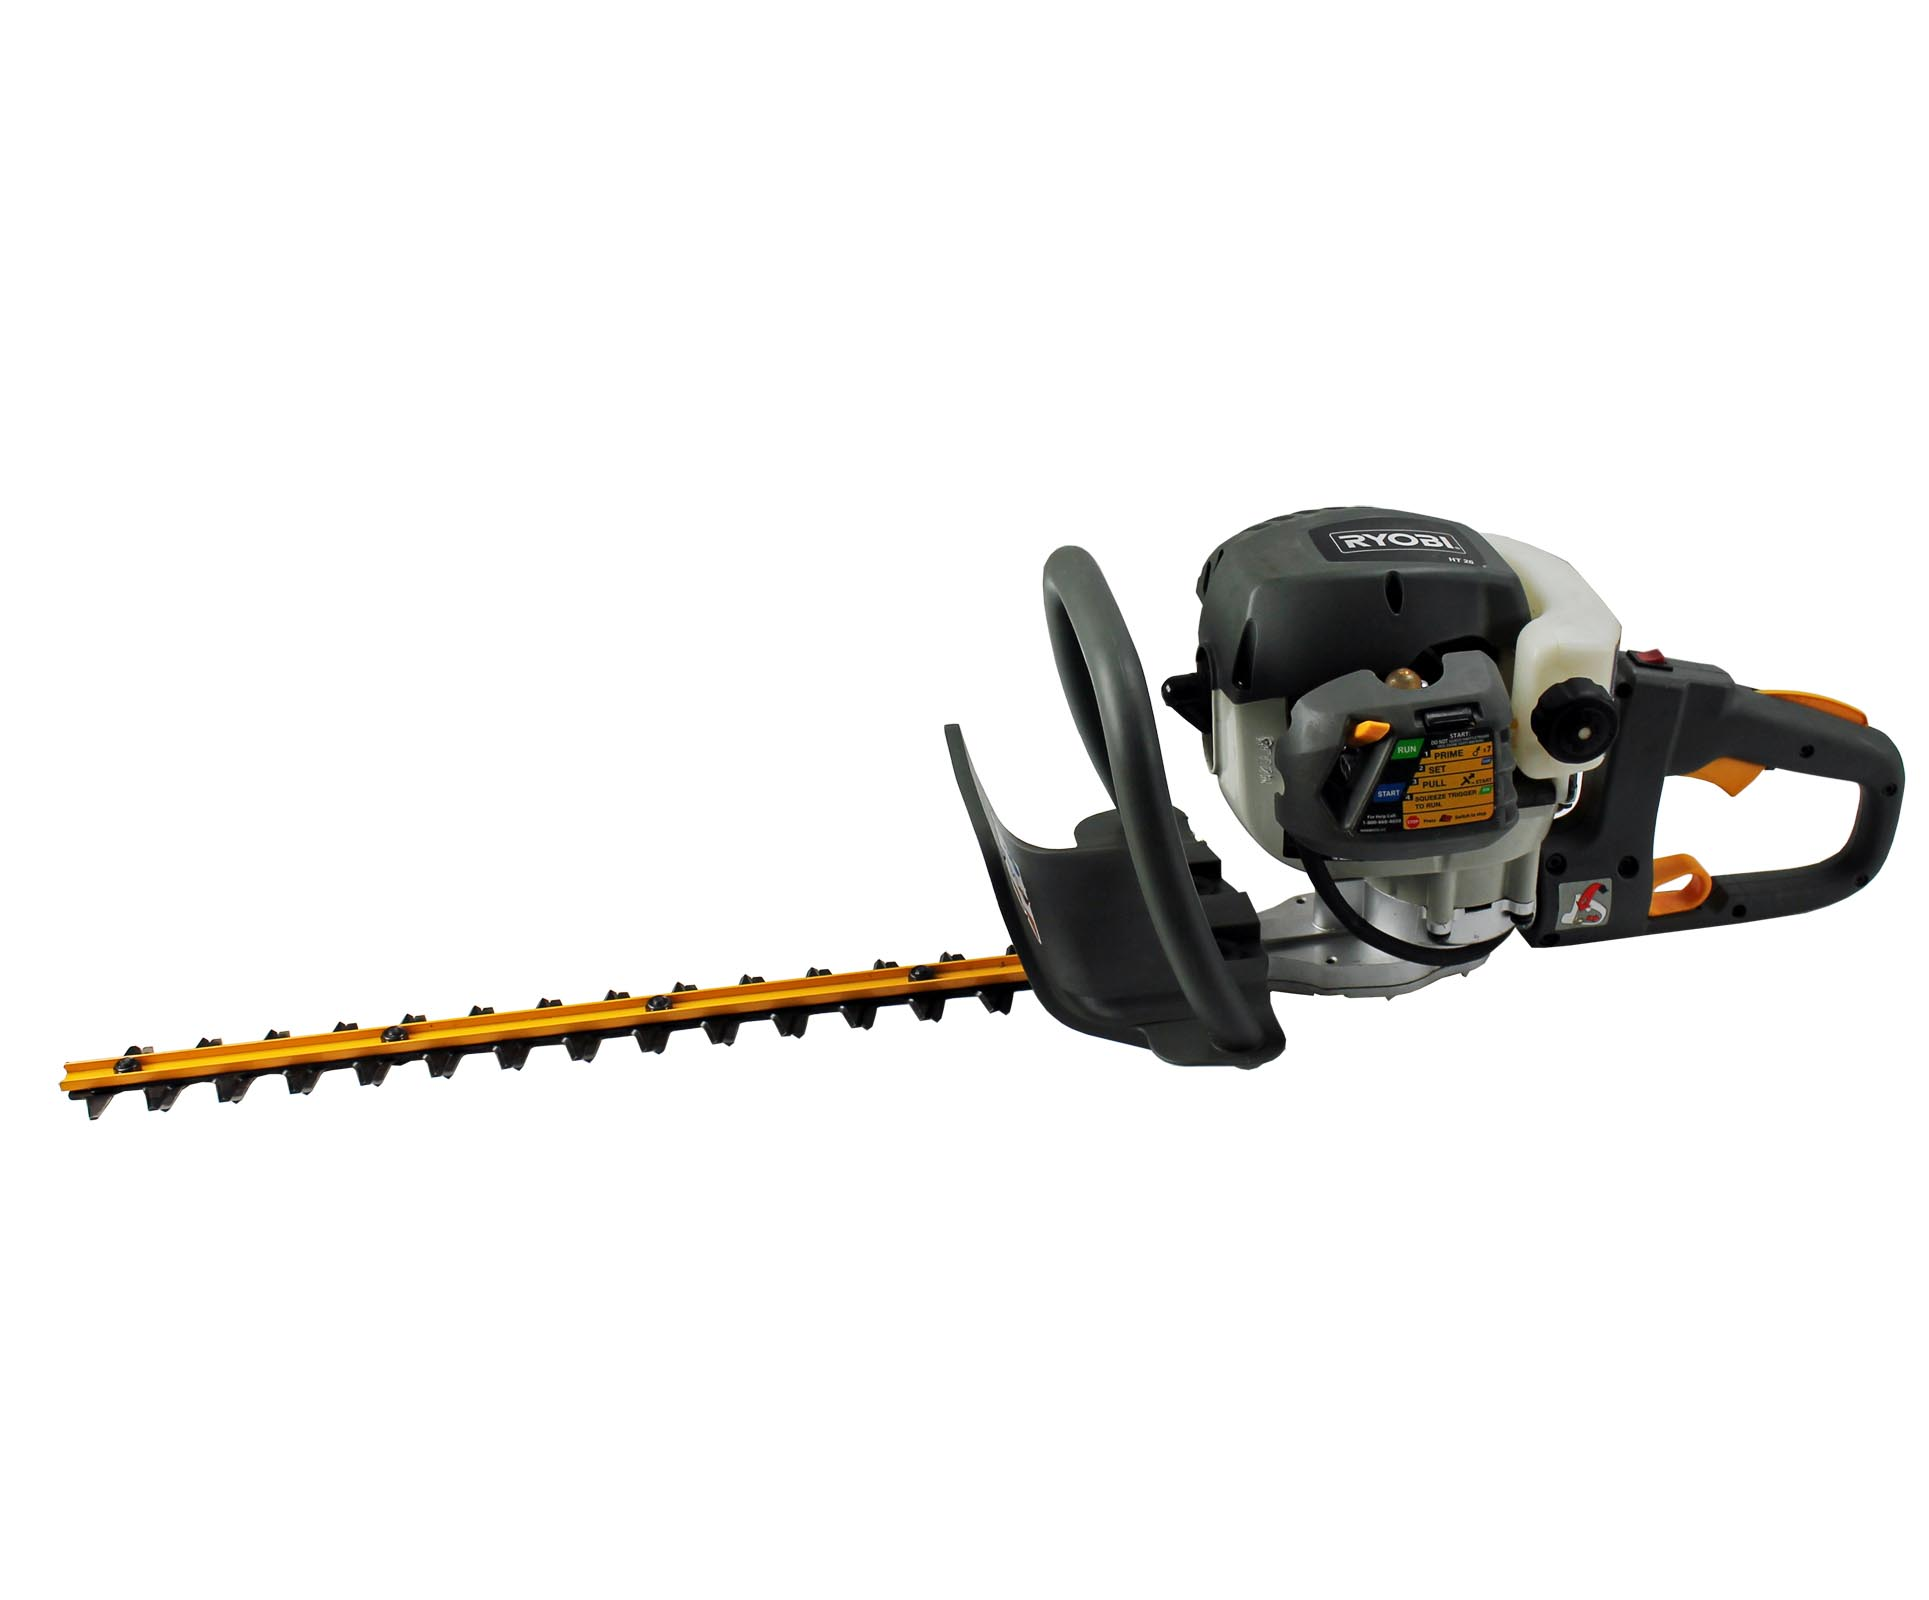 ZRRY39500�RYOBI RY39500 22-Inch 26cc Gas Powered Hedge Trimmer Saw (Refurbished)